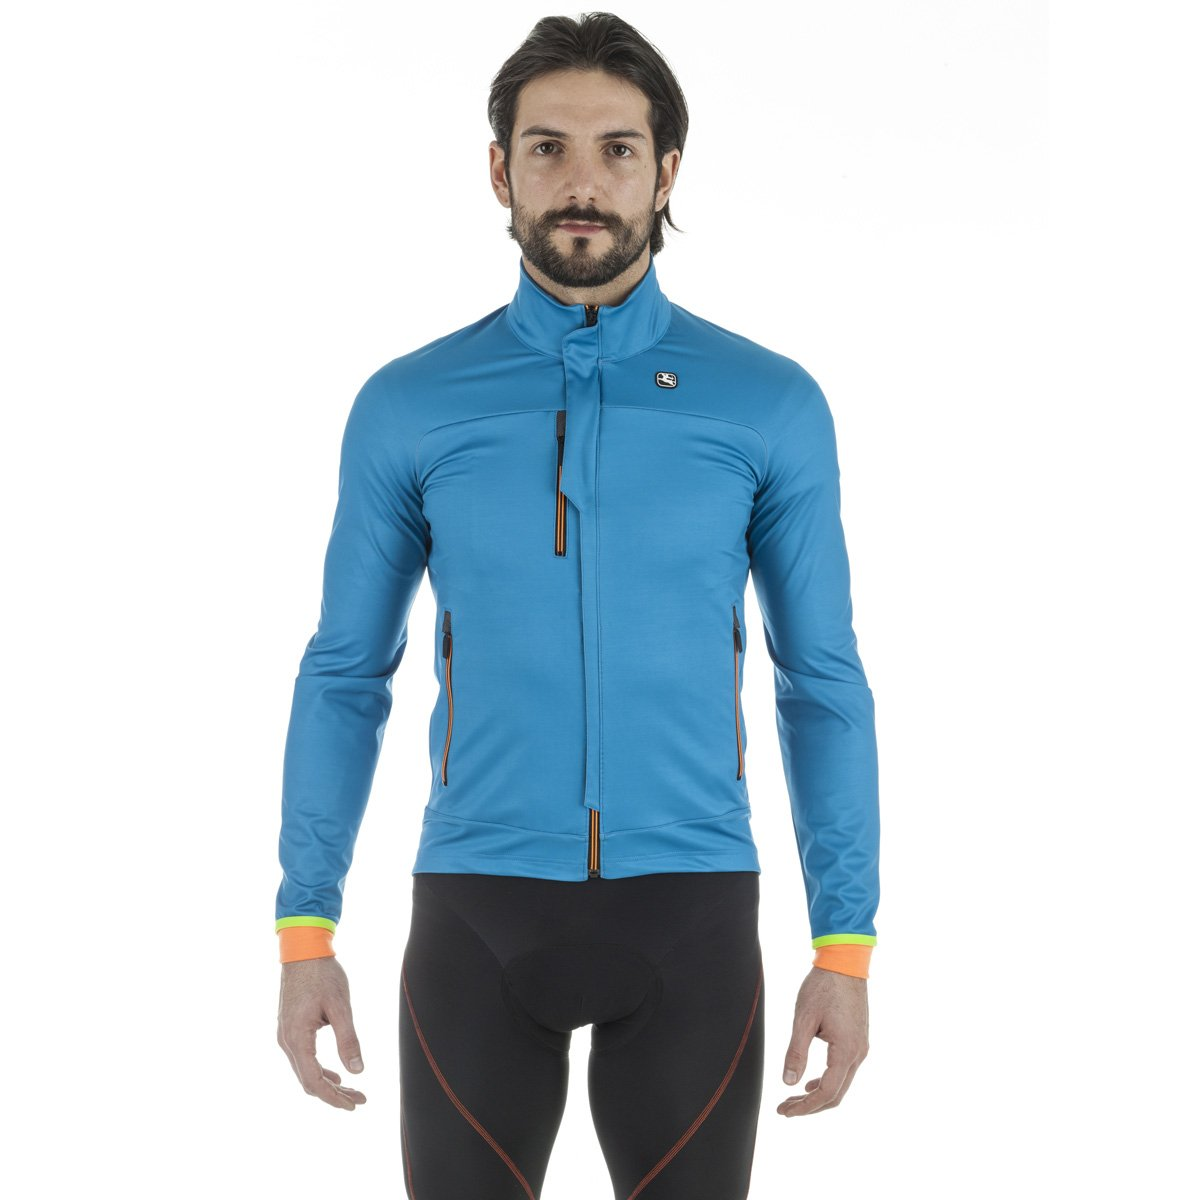 Giordana sosta Winter Jacket – Men 's Medium アクア B01MEEXPFH